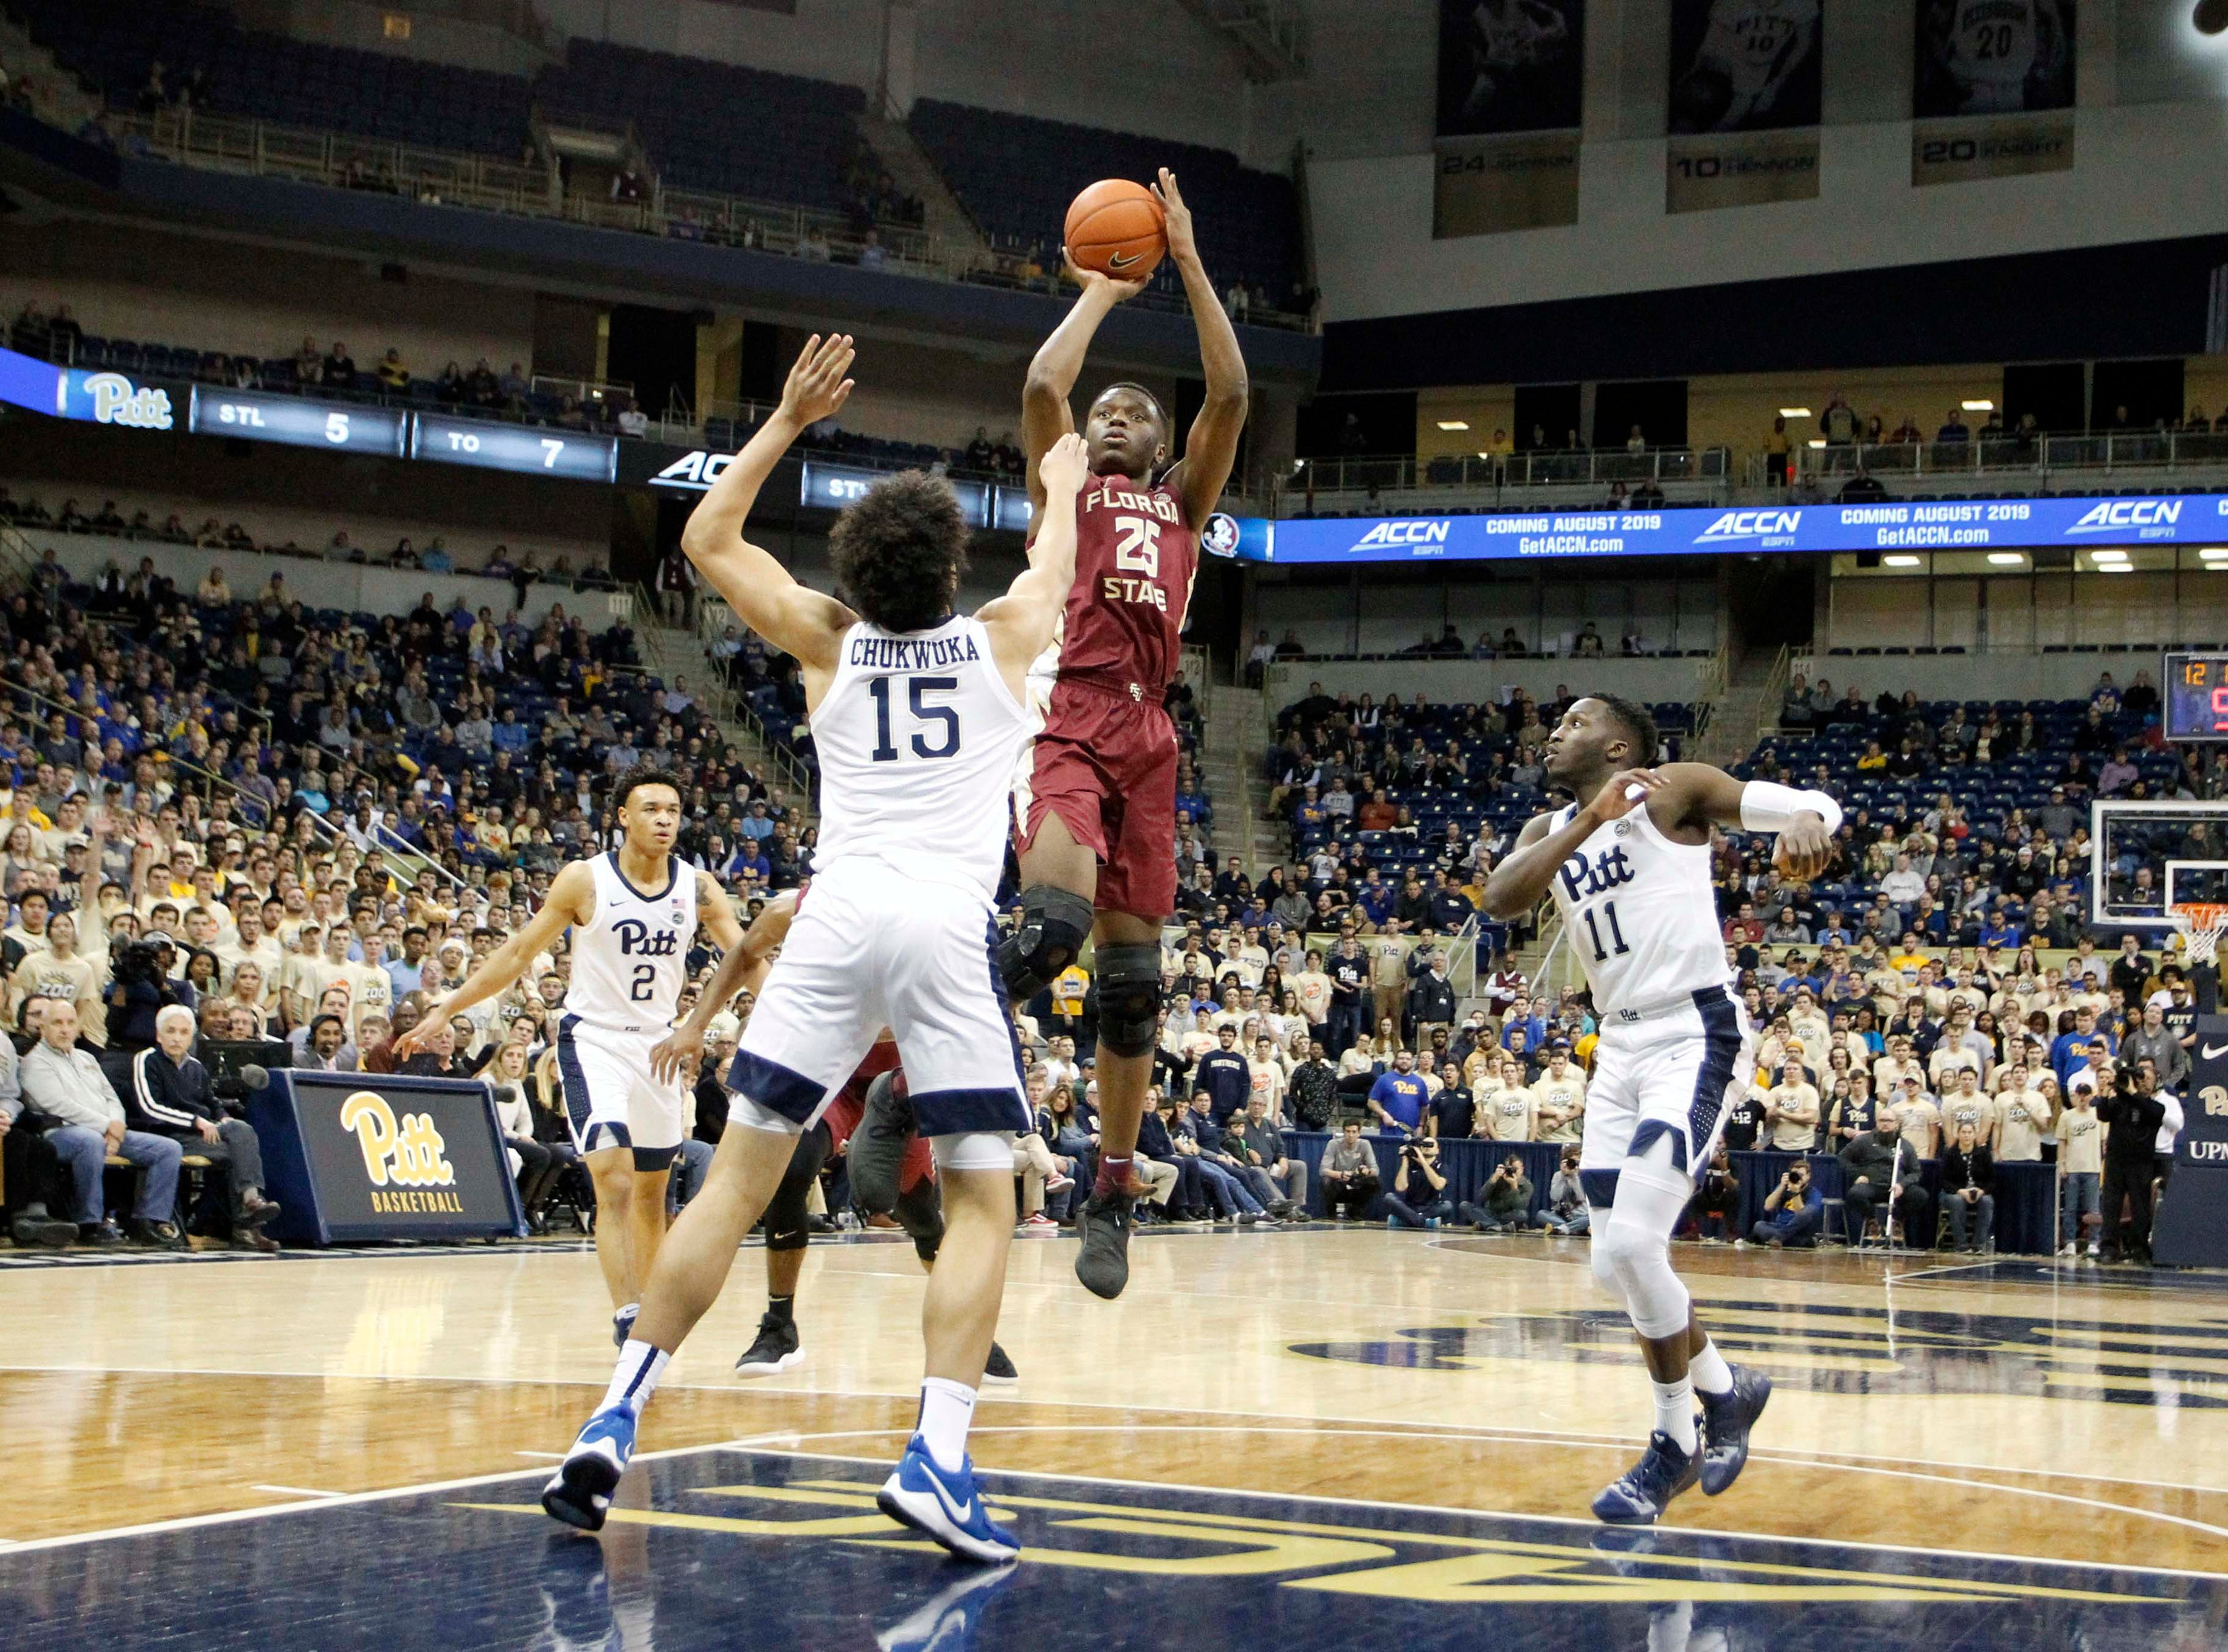 Jan 14, 2019; Pittsburgh, PA, USA; Florida State Seminoles forward Mfiondu Kabengele (25) shoots against the Pittsburgh Panthers during the second half at the Petersen Events Center. Pittsburgh won 75-62. Mandatory Credit: Charles LeClaire-USA TODAY Sports